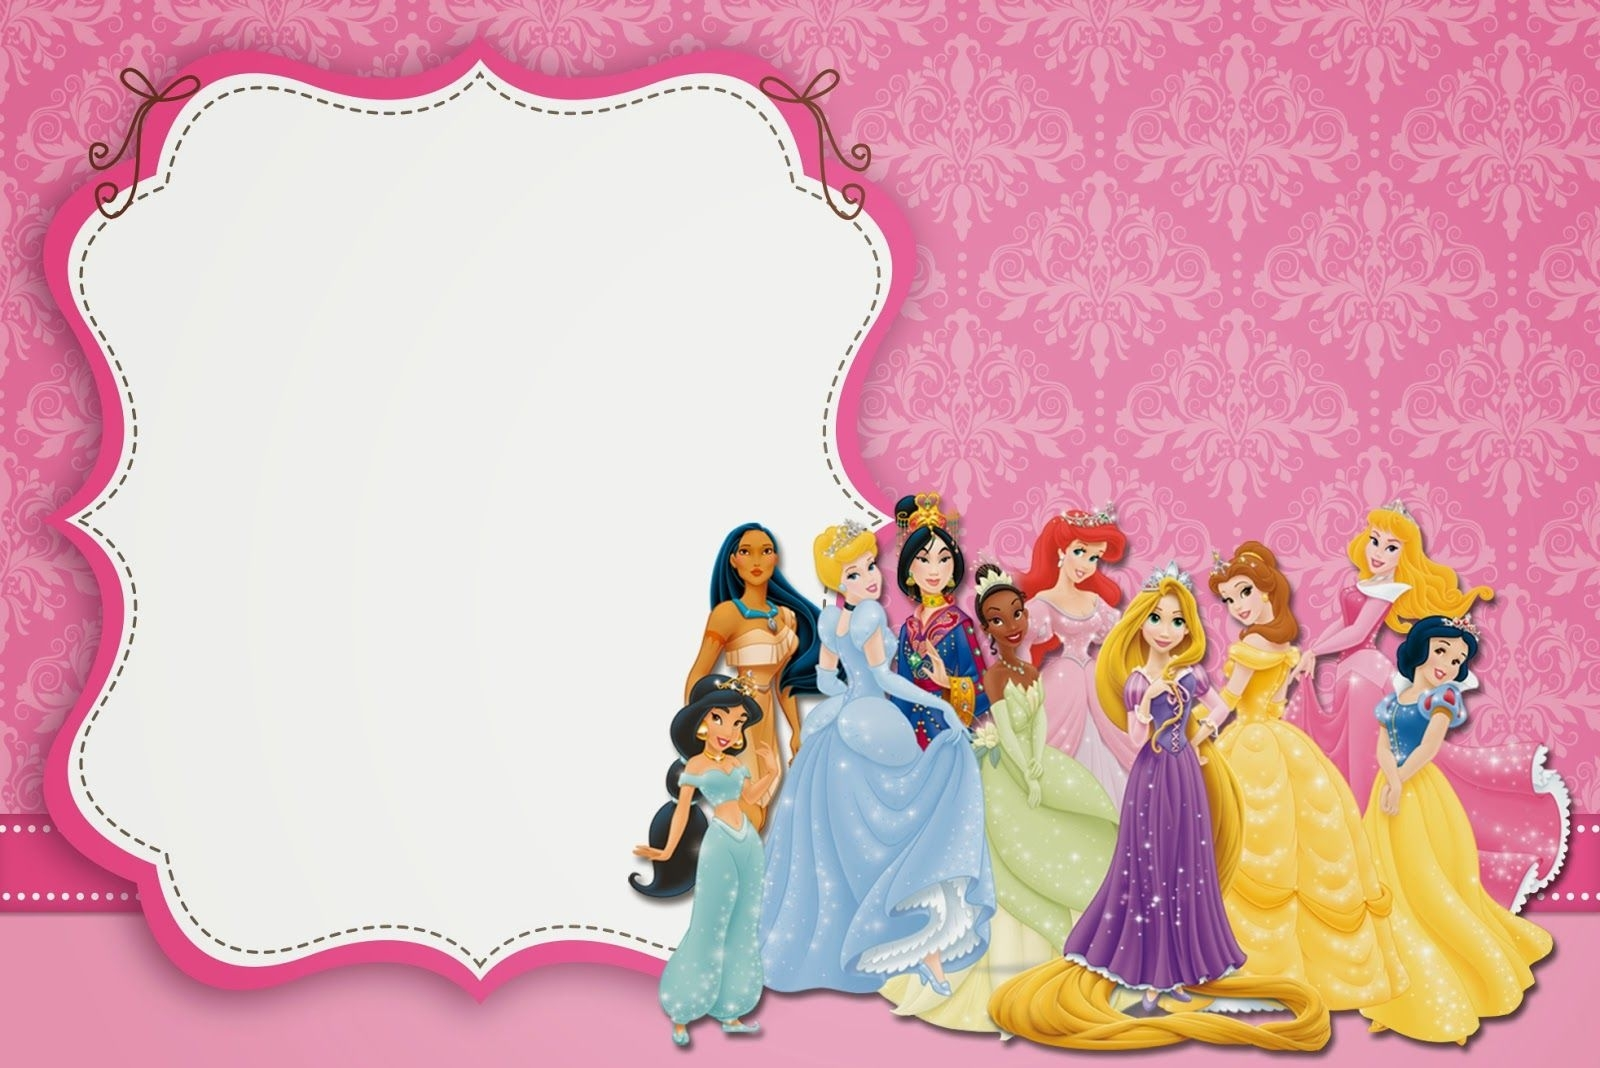 Blank Disney Princess Invite - Google Search | Disney Princesses regarding Disney Princess Letter Head Templates Free